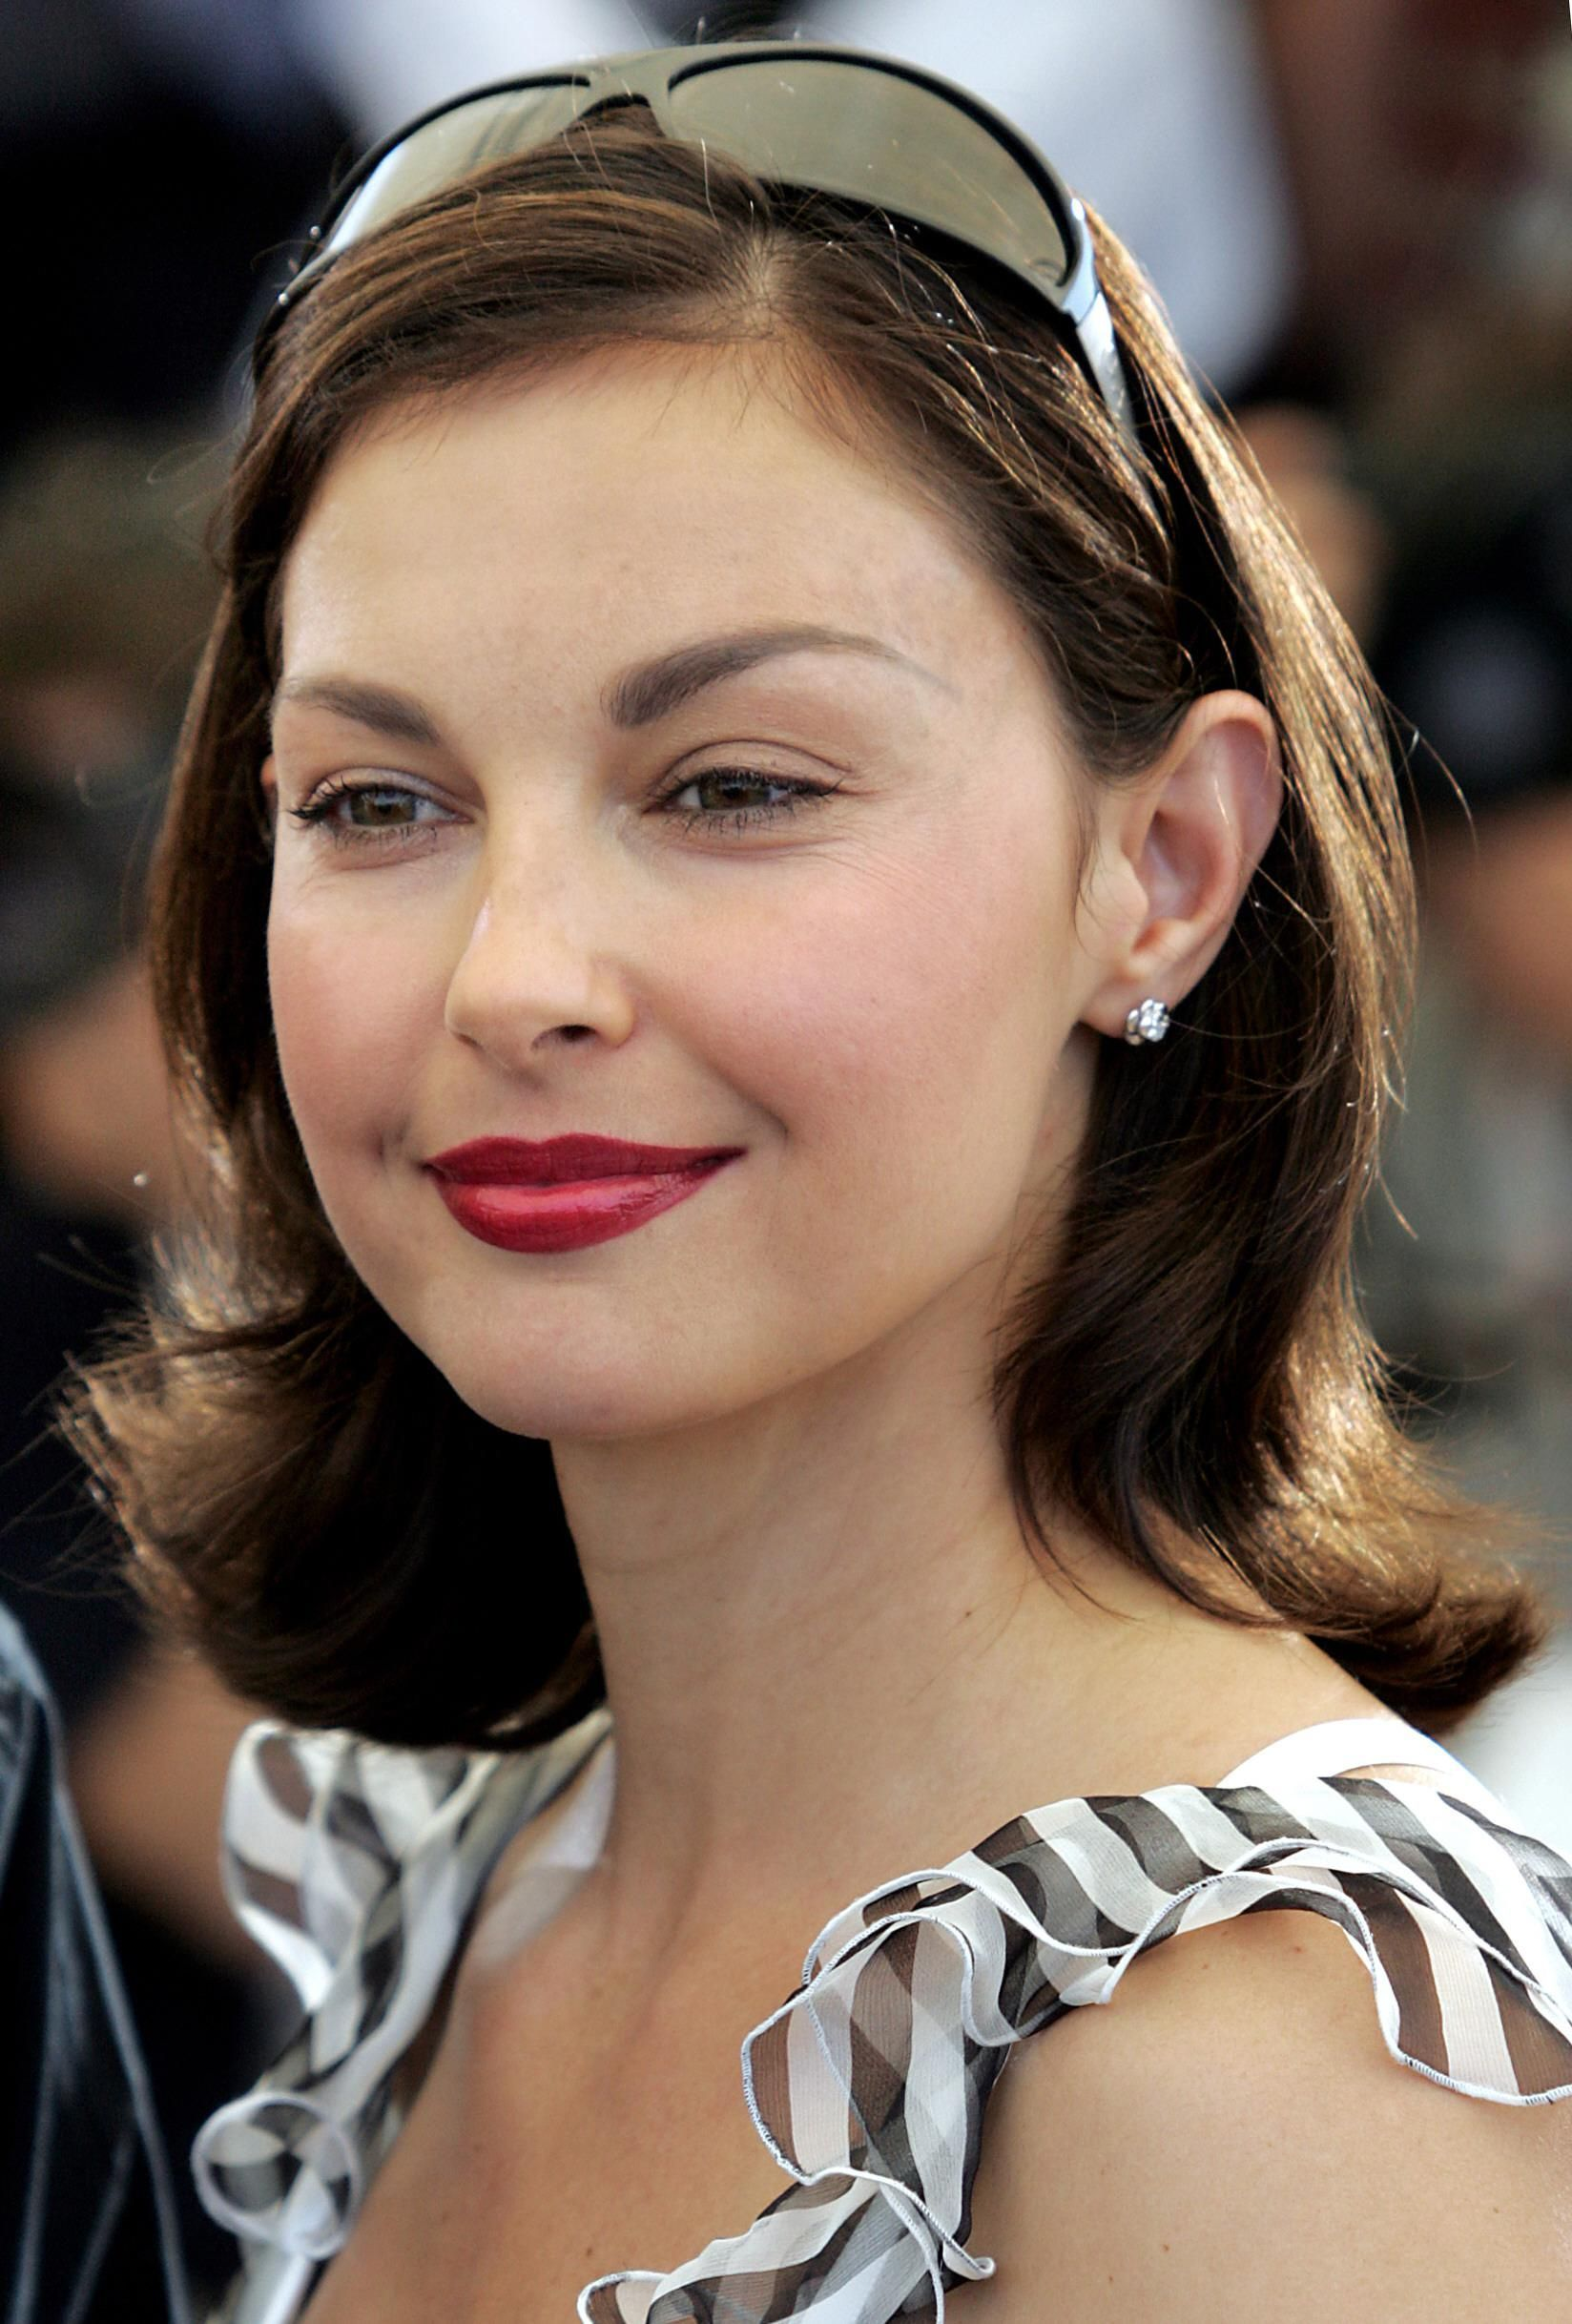 Ashley Judd: pic #23848 - (ViathePinner, I use to attend the same Church she and Mom & Wyonna, in Nashville, TN. (If they still attend there, I don't know. But I do know the Pastor and the Regular Attenders at the Christ Church Pentecostal on Old Hickory Blvd. The Pastor and Attenders there won't go alone with her Belief in Hillary Clinton. It is rumored that Hilly has had too many close associates murdered that knew too much. Benghazi men died because of her! Hilly thinks alright to KILL a…